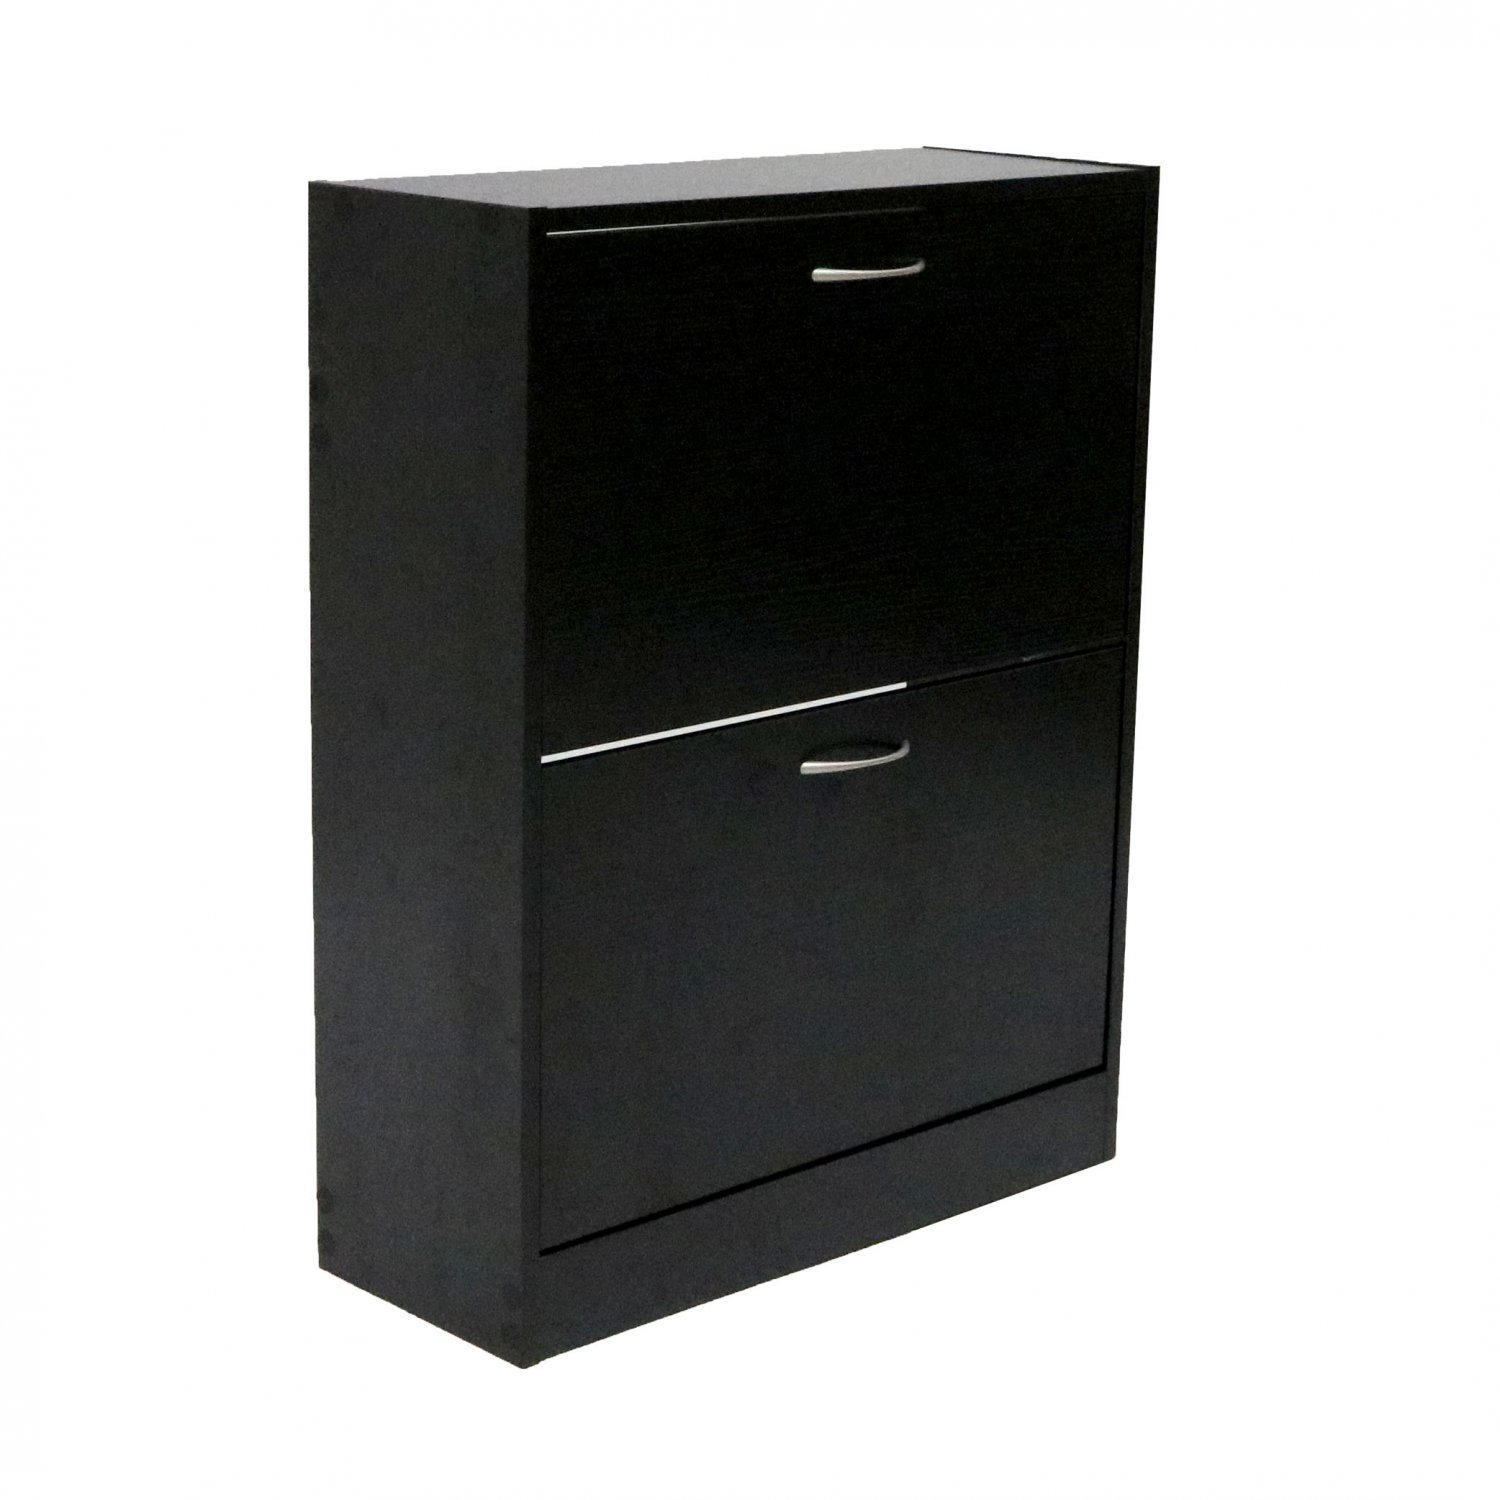 2 Drawer Wood Effect Shoe Storage Cupboard Cabinet Furniture